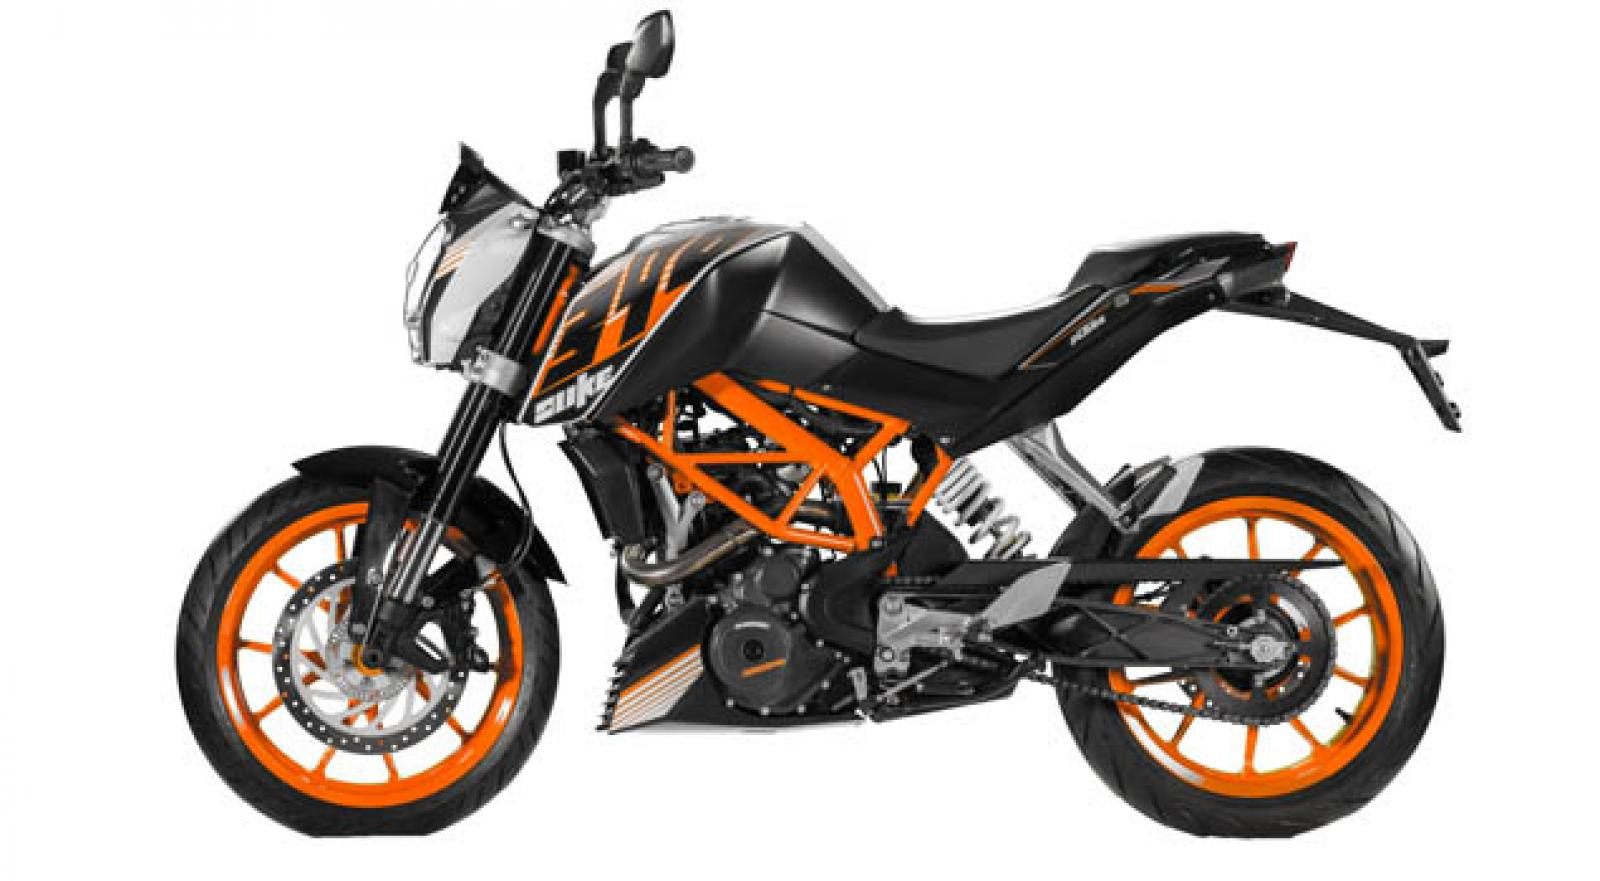 2014 ktm 390 duke abs moto zombdrive com. Black Bedroom Furniture Sets. Home Design Ideas